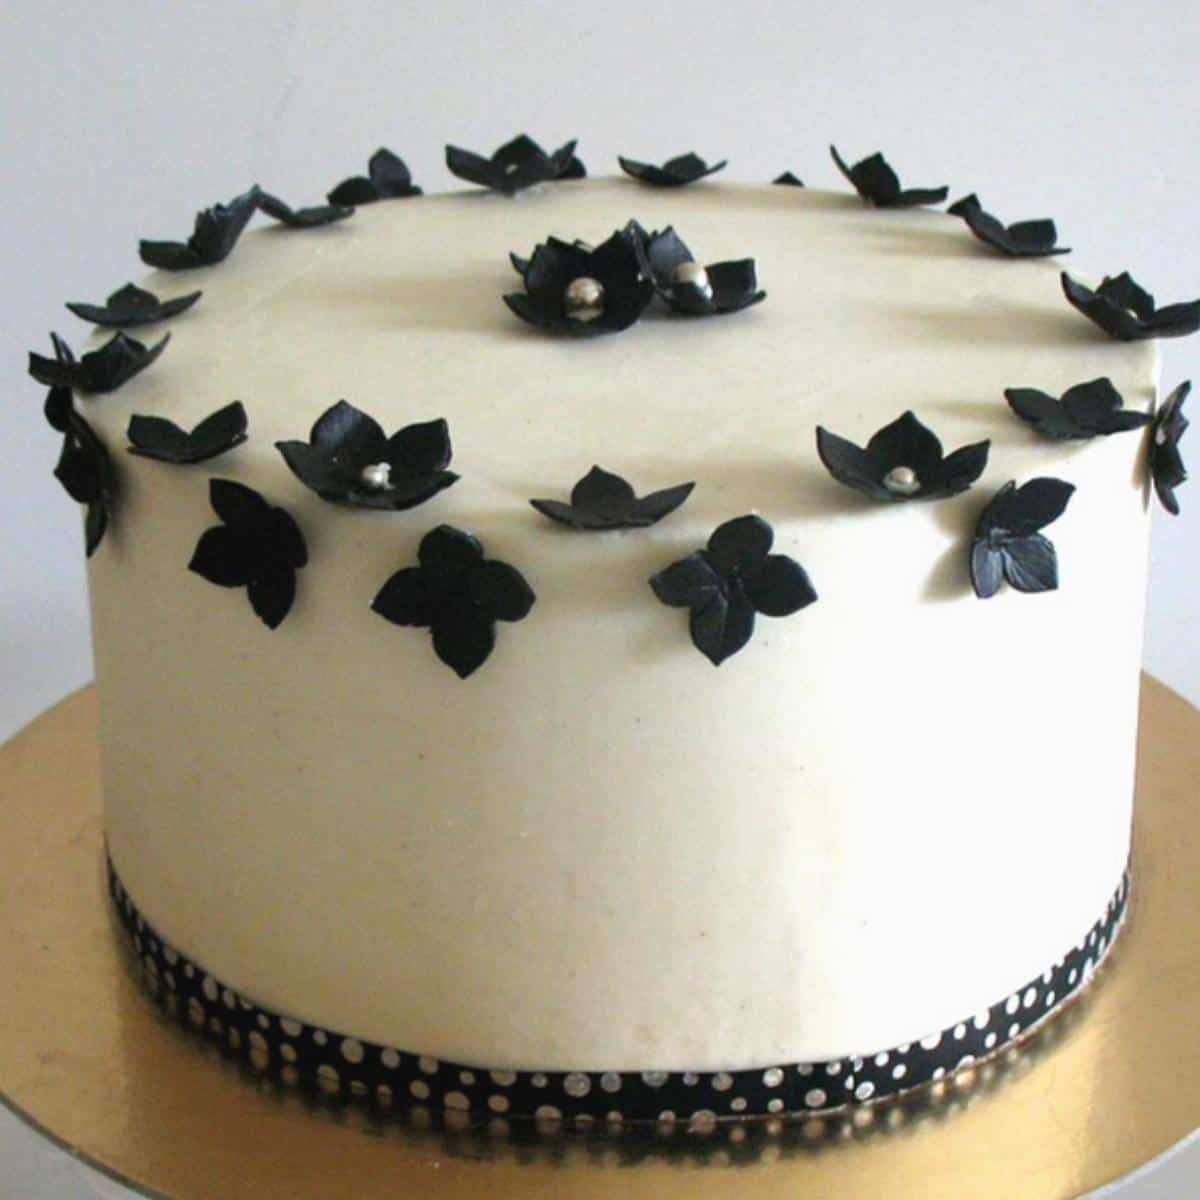 A buttercream frosted cake with sharp edges.